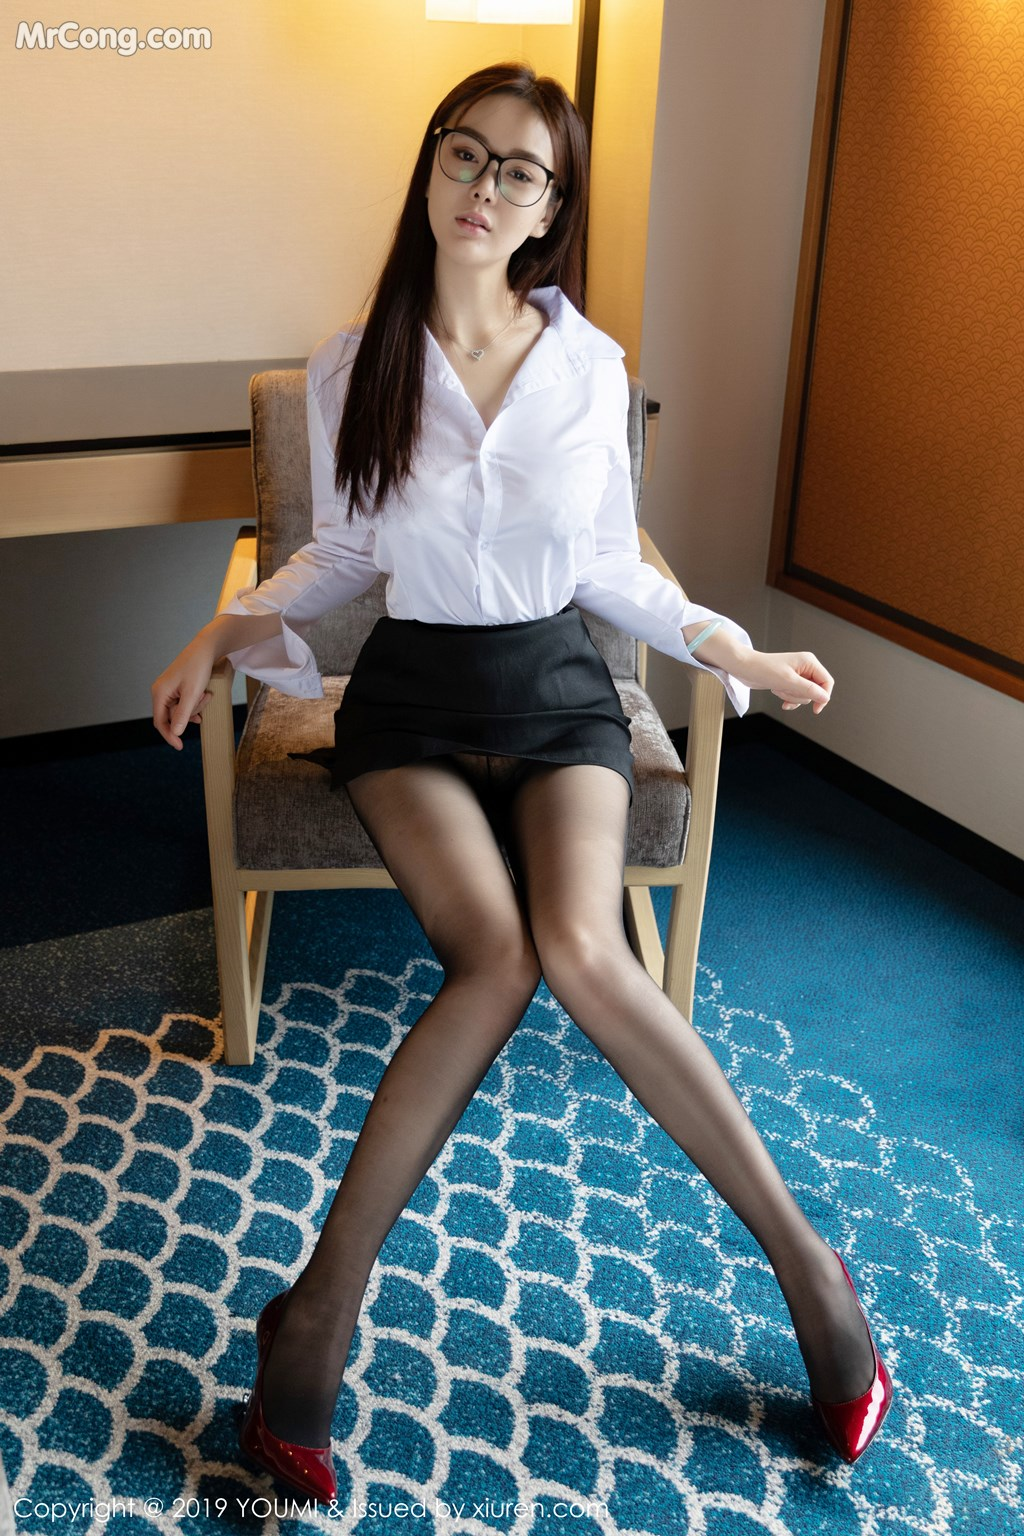 Image YouMi-Vol.320-Silvia-MrCong.com-002 in post YouMi Vol.320: 易阳Silvia (65 ảnh)